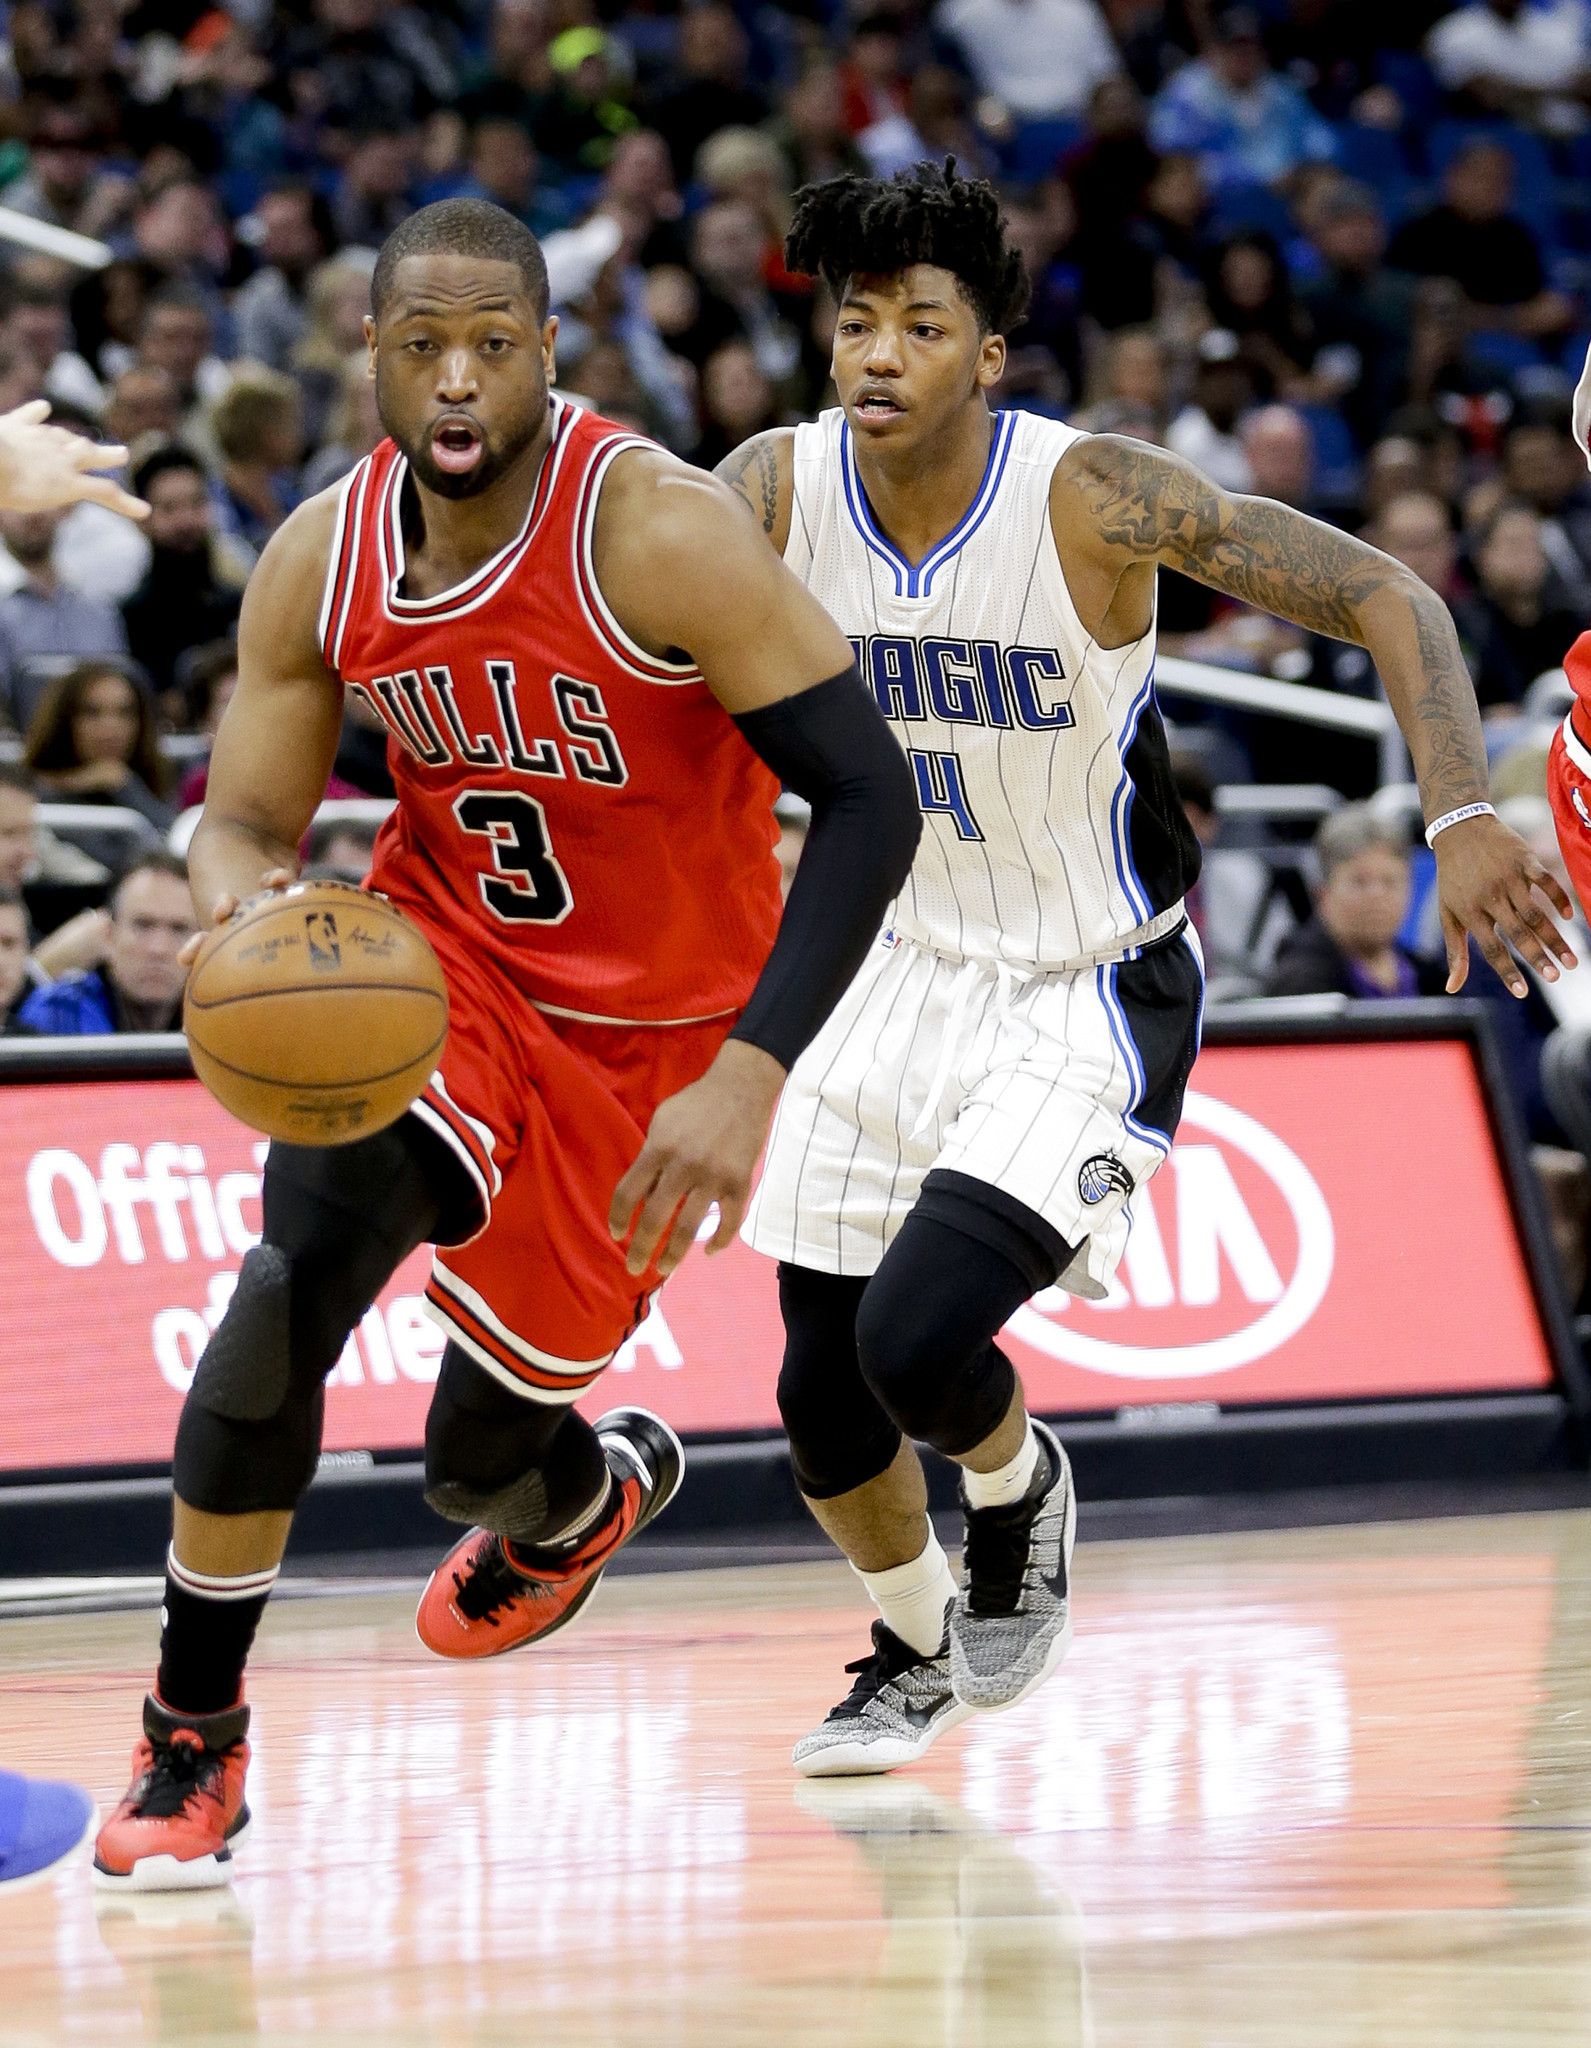 Dwyane Wade on pace to play 73 games — just shy of preseason goal